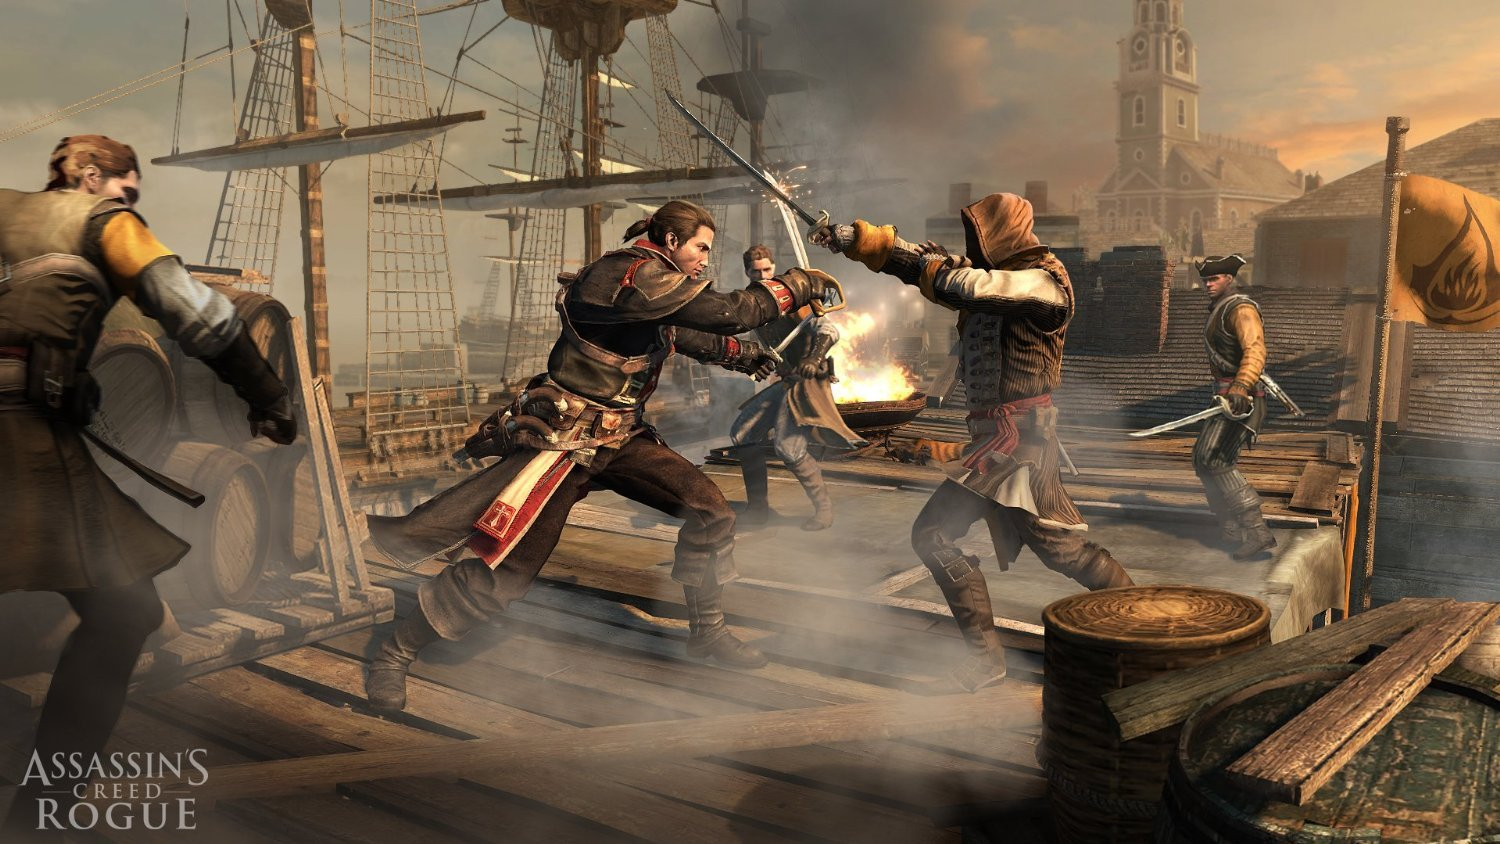 Buy Assassin's Creed: Rogue (PC) Online at Low Prices in India | UBI Soft  Video Games - Amazon.in